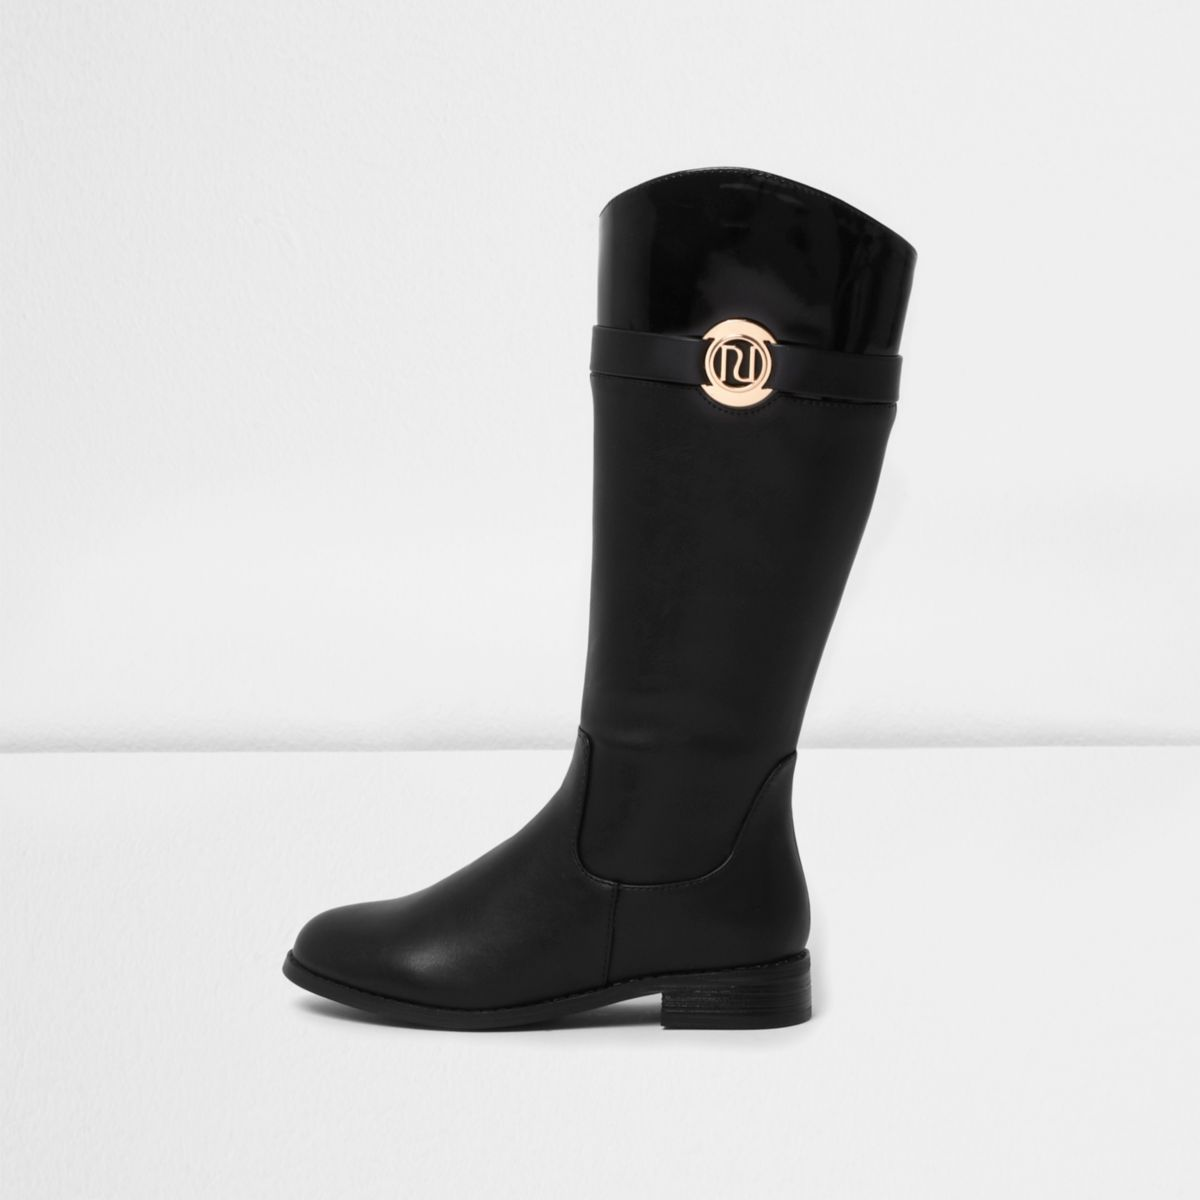 Girls black knee-high boots